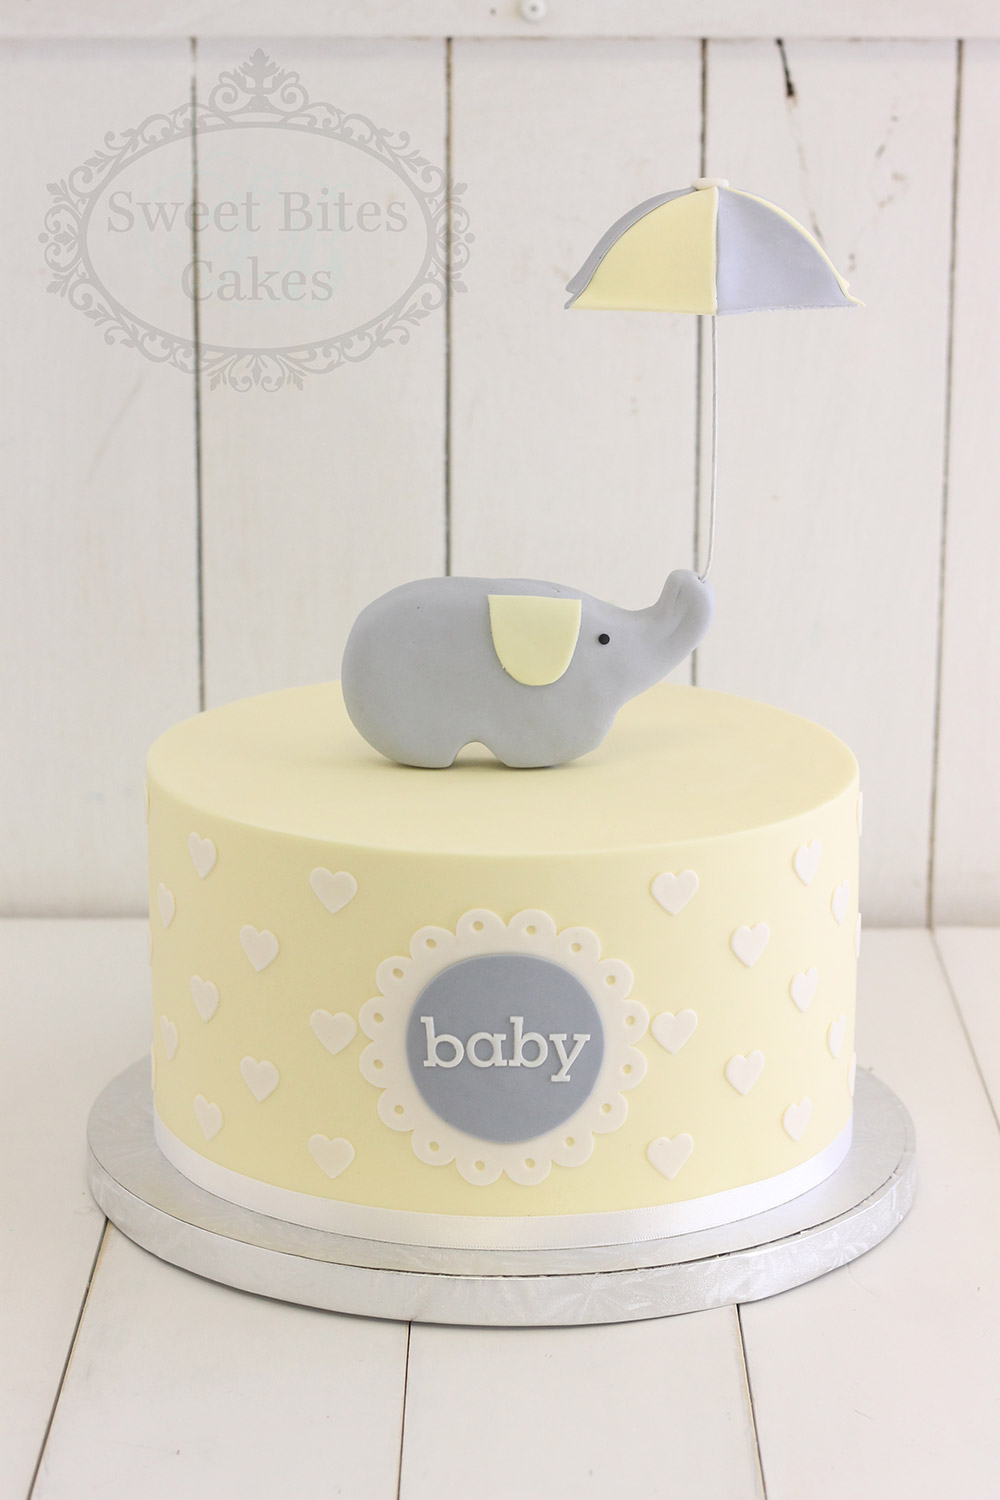 Simple Yellow And Grey Baby Shower Cake Sweet Bites Cakes